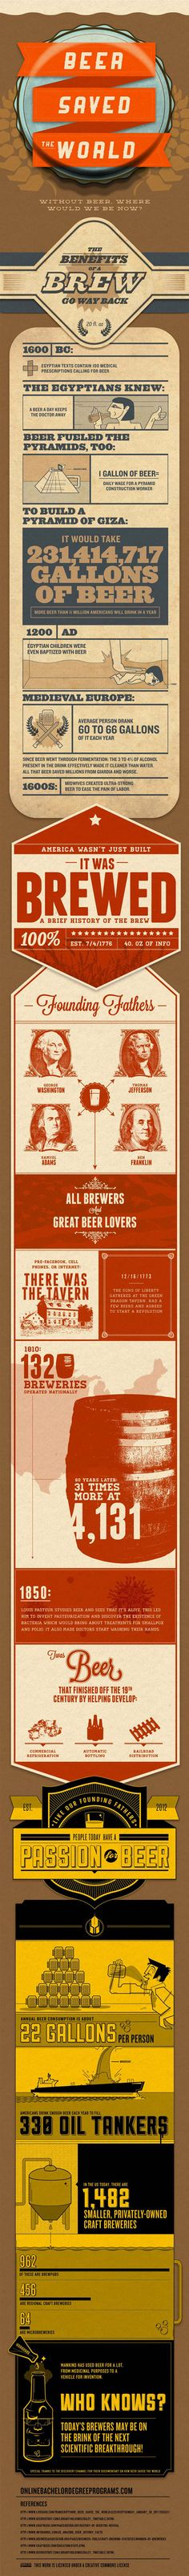 [Infographic] Beer Saved the World